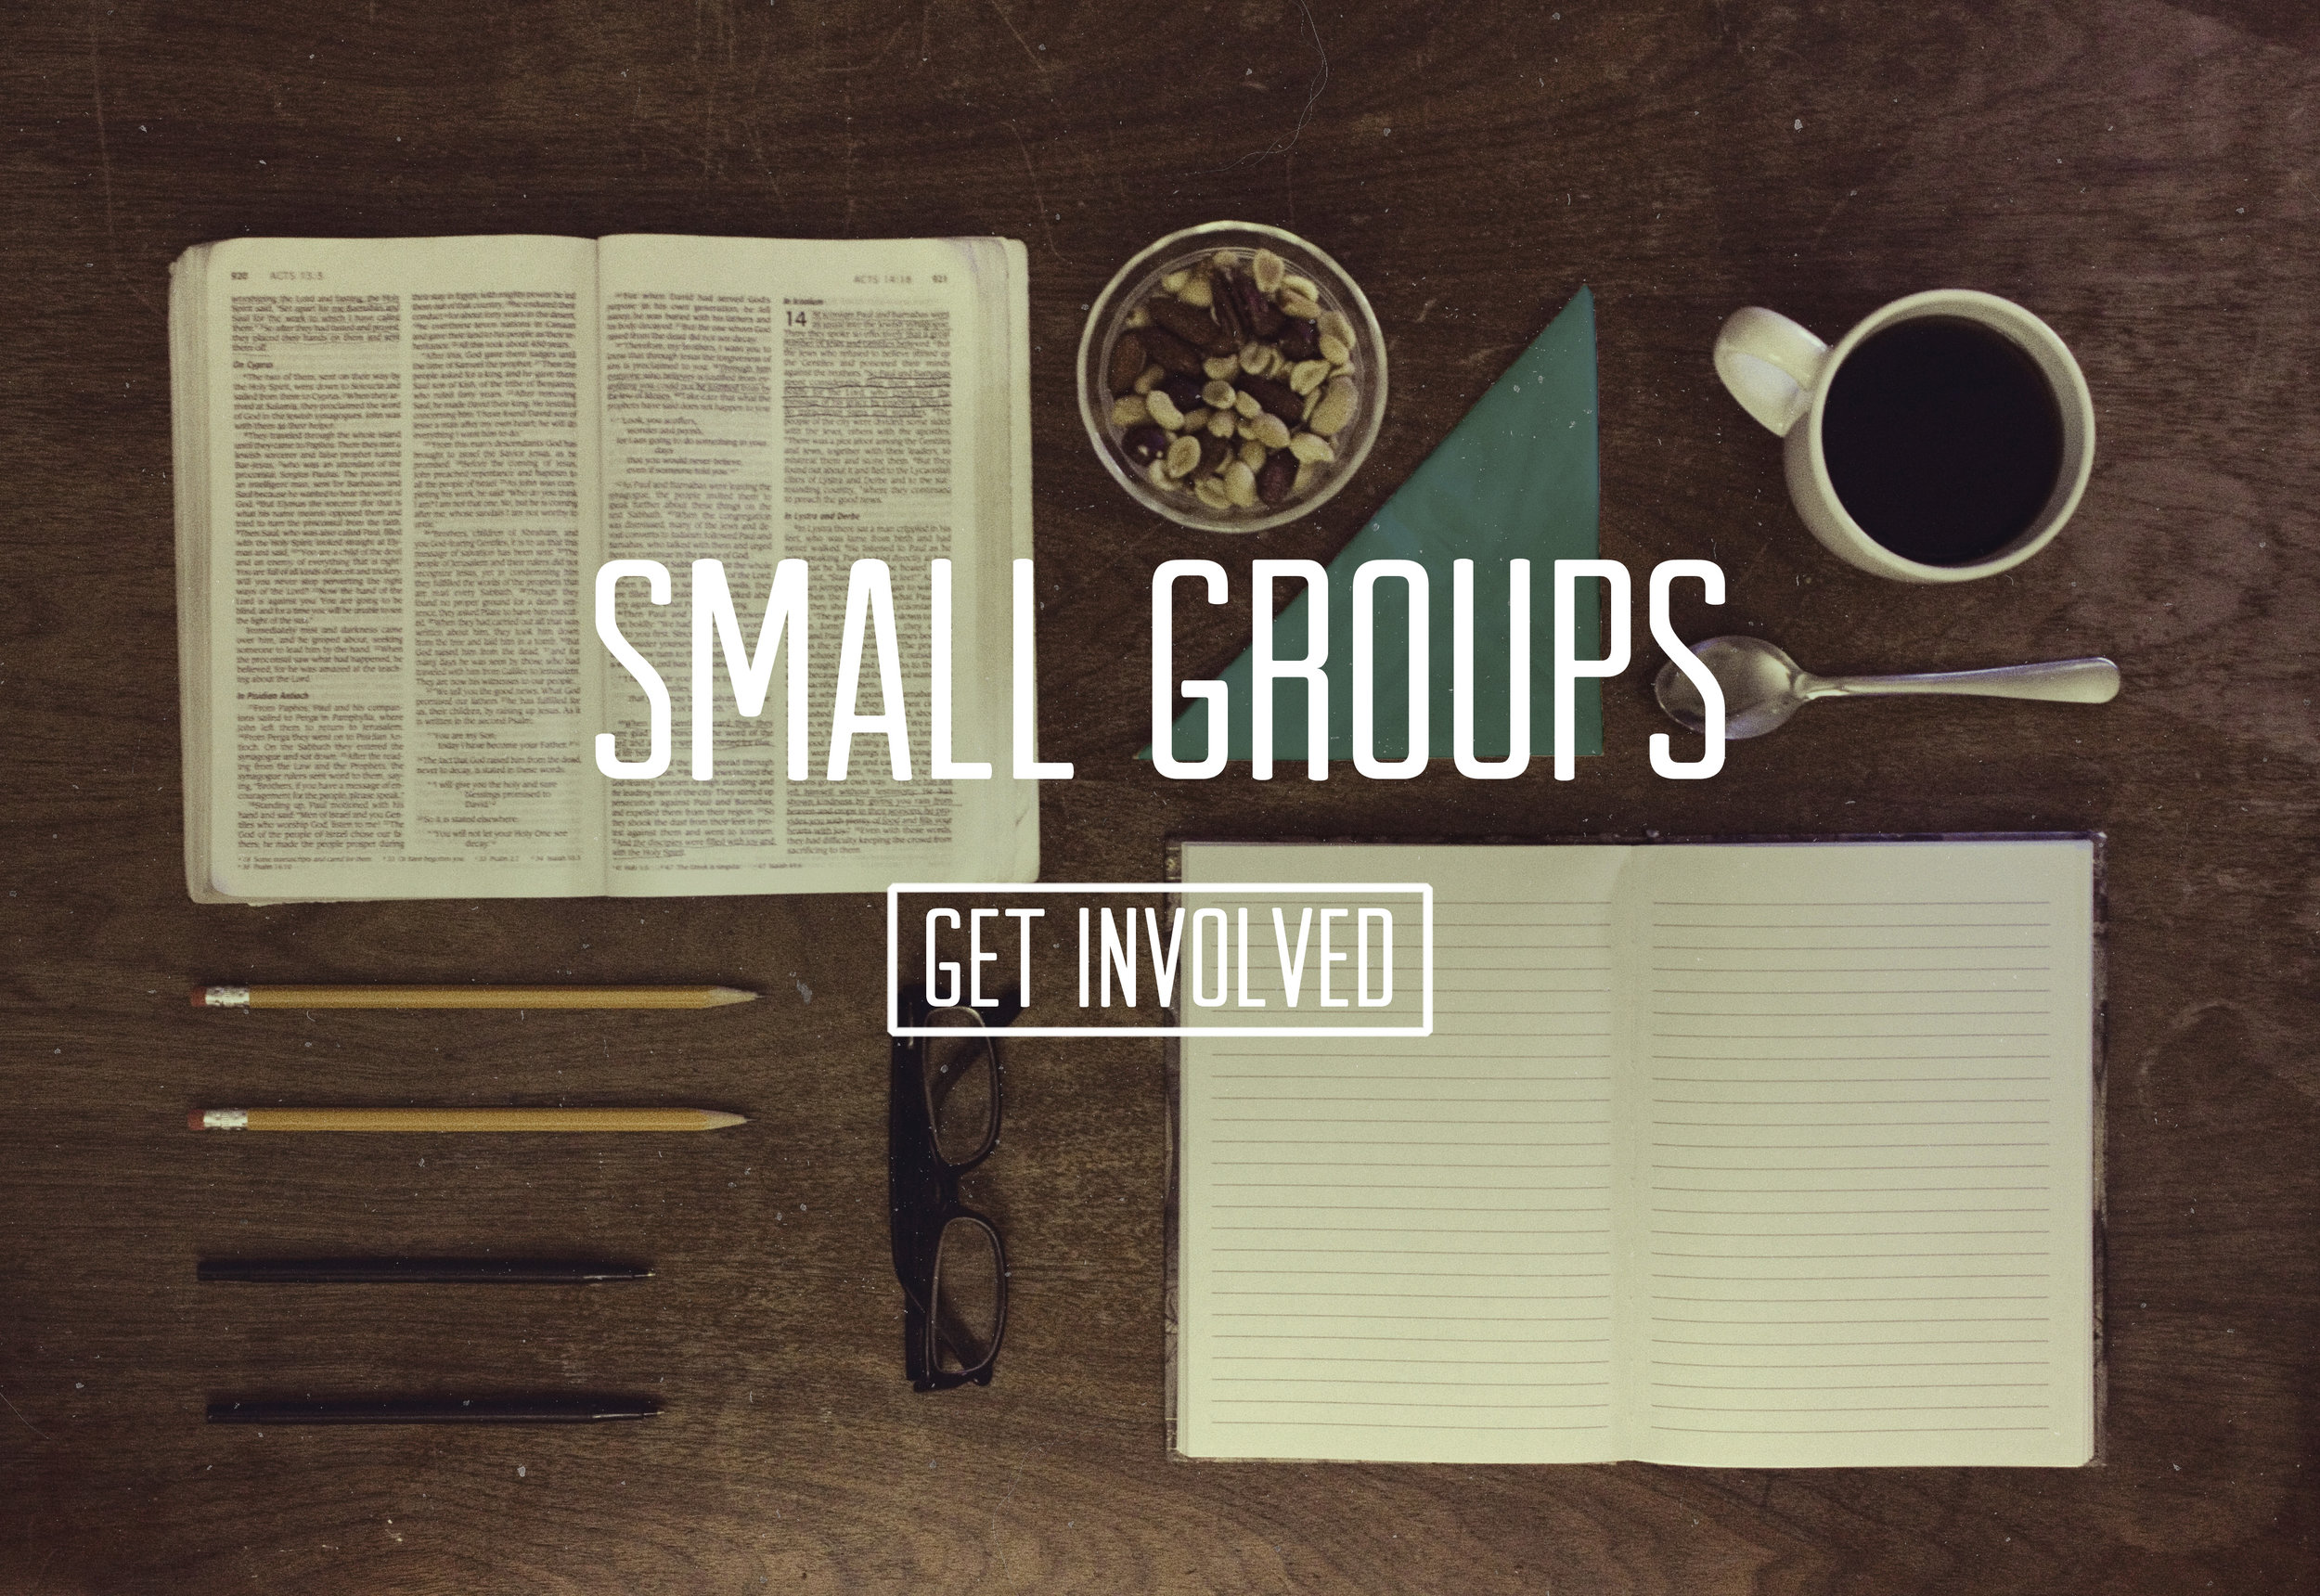 Small_Groups_Image.jpg